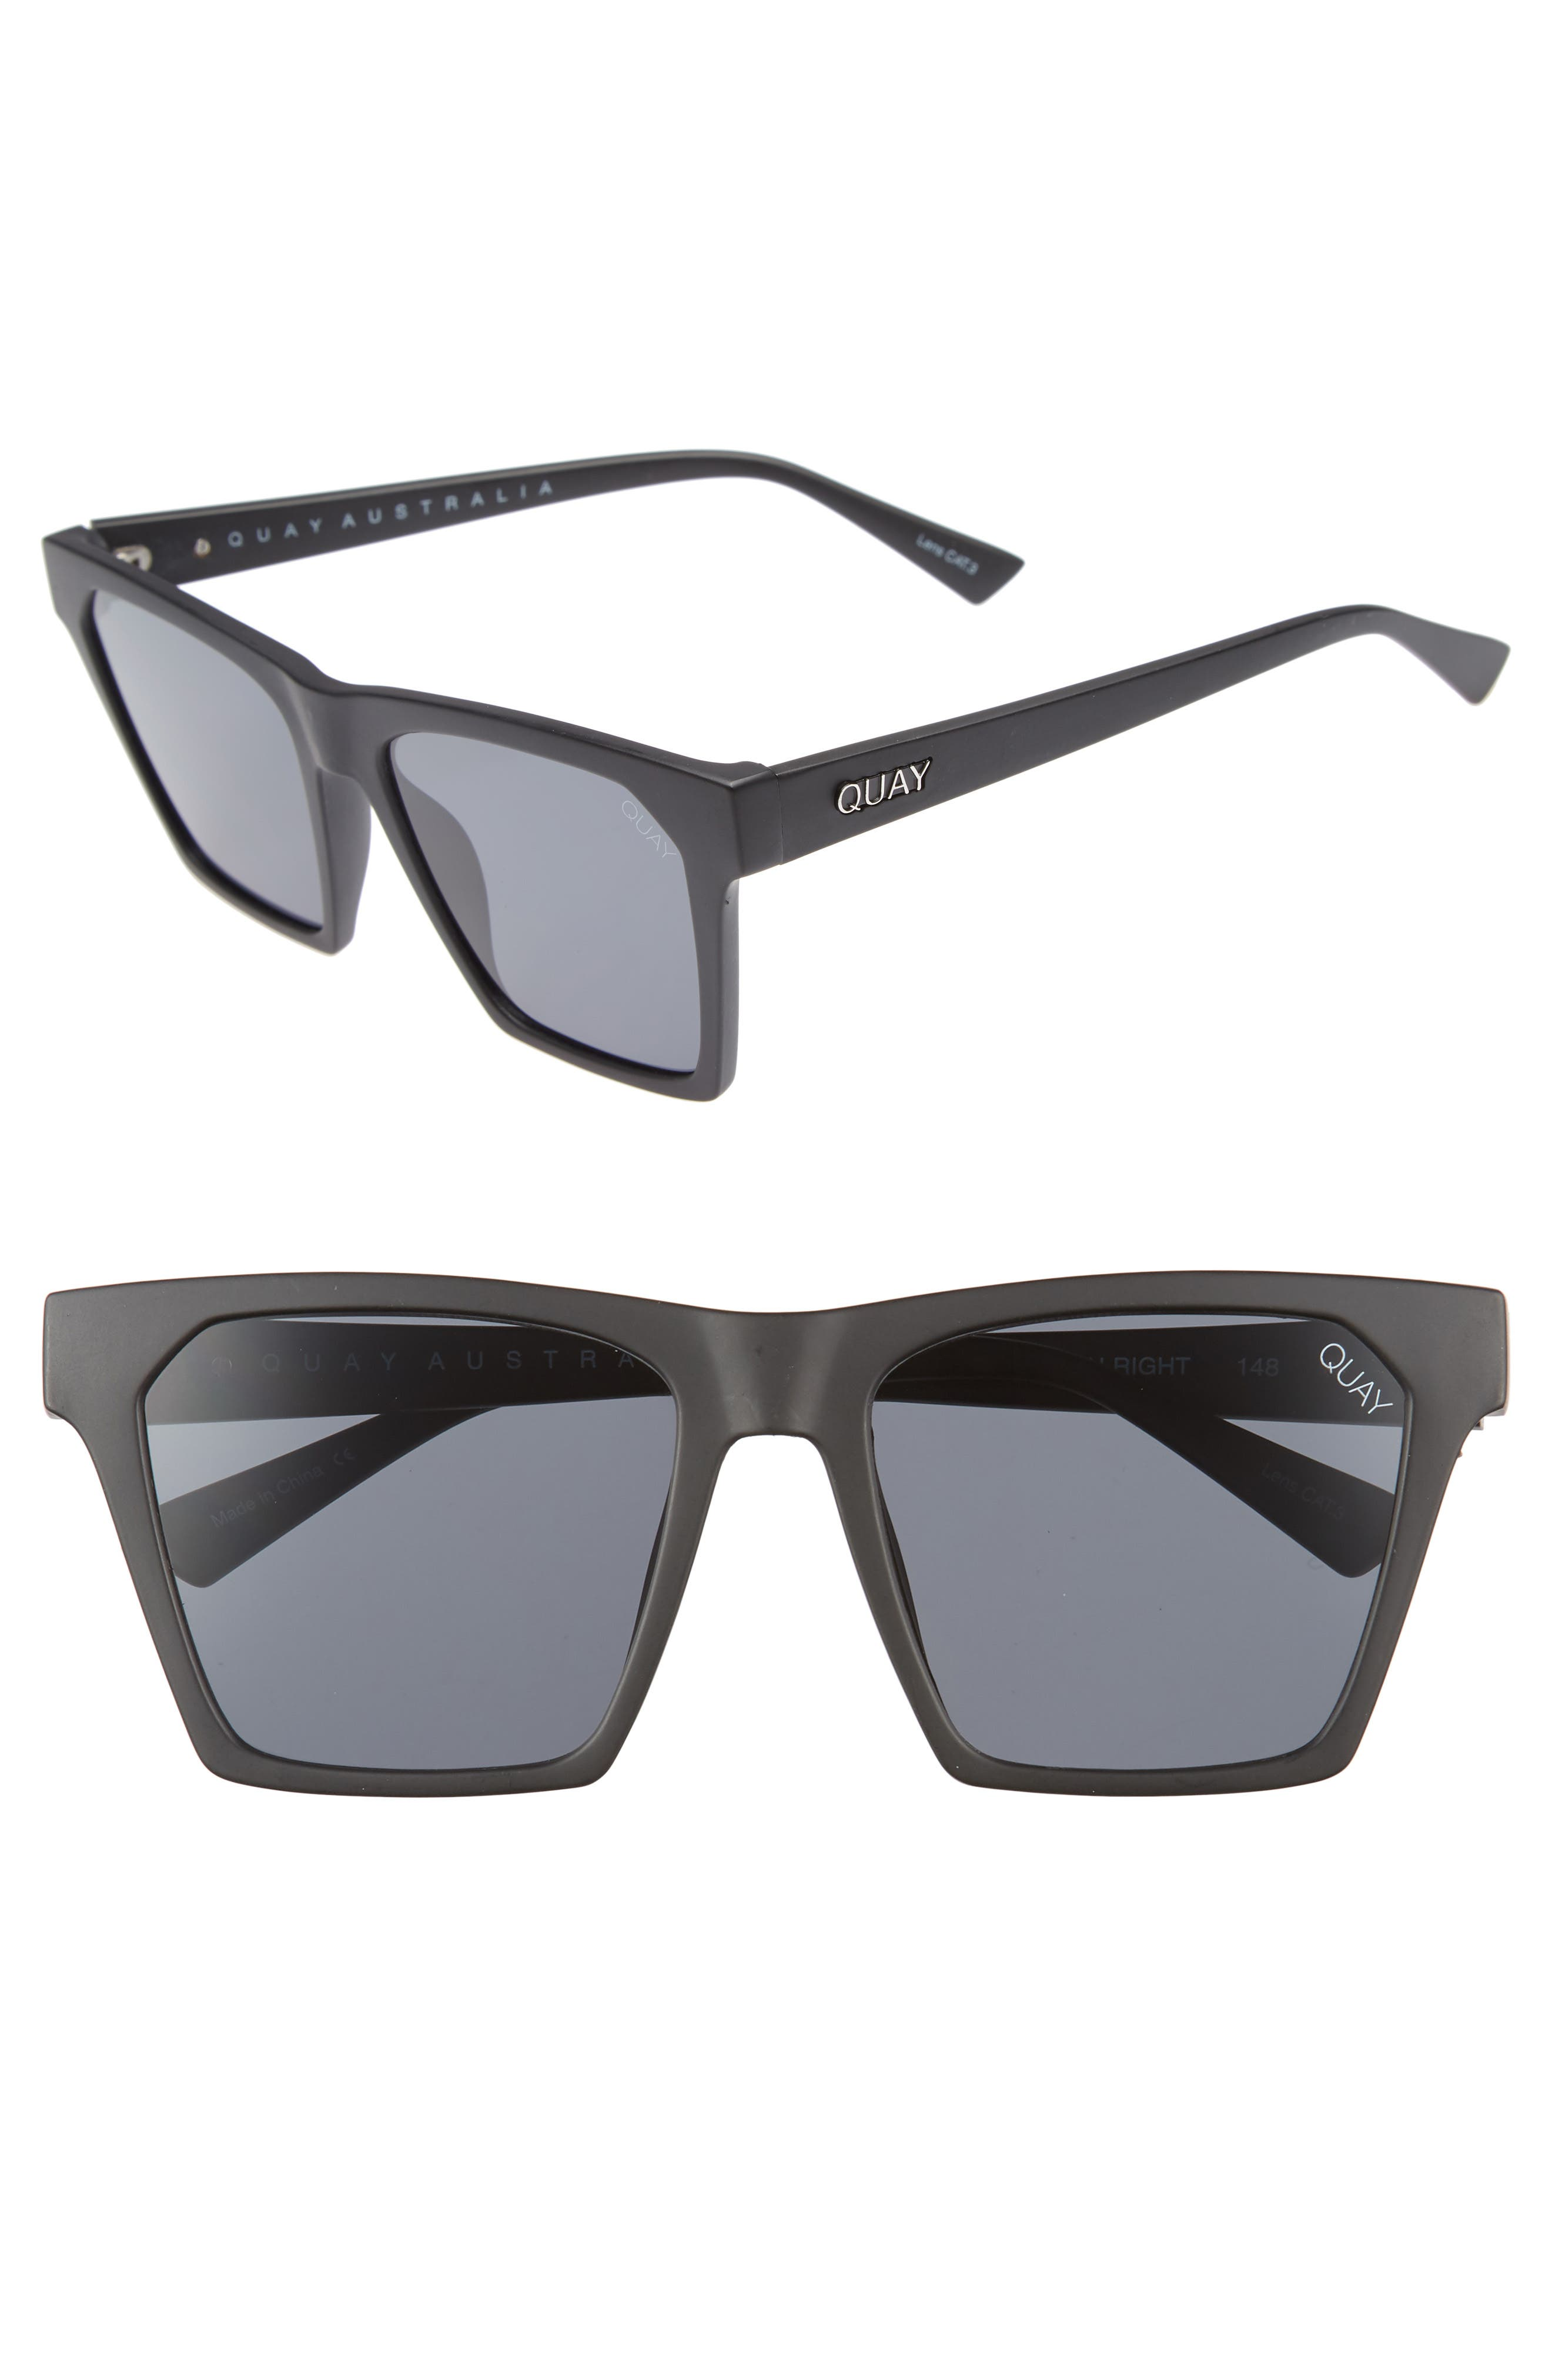 x Missguided Alright 55mm Square Sunglasses,                             Main thumbnail 1, color,                             001